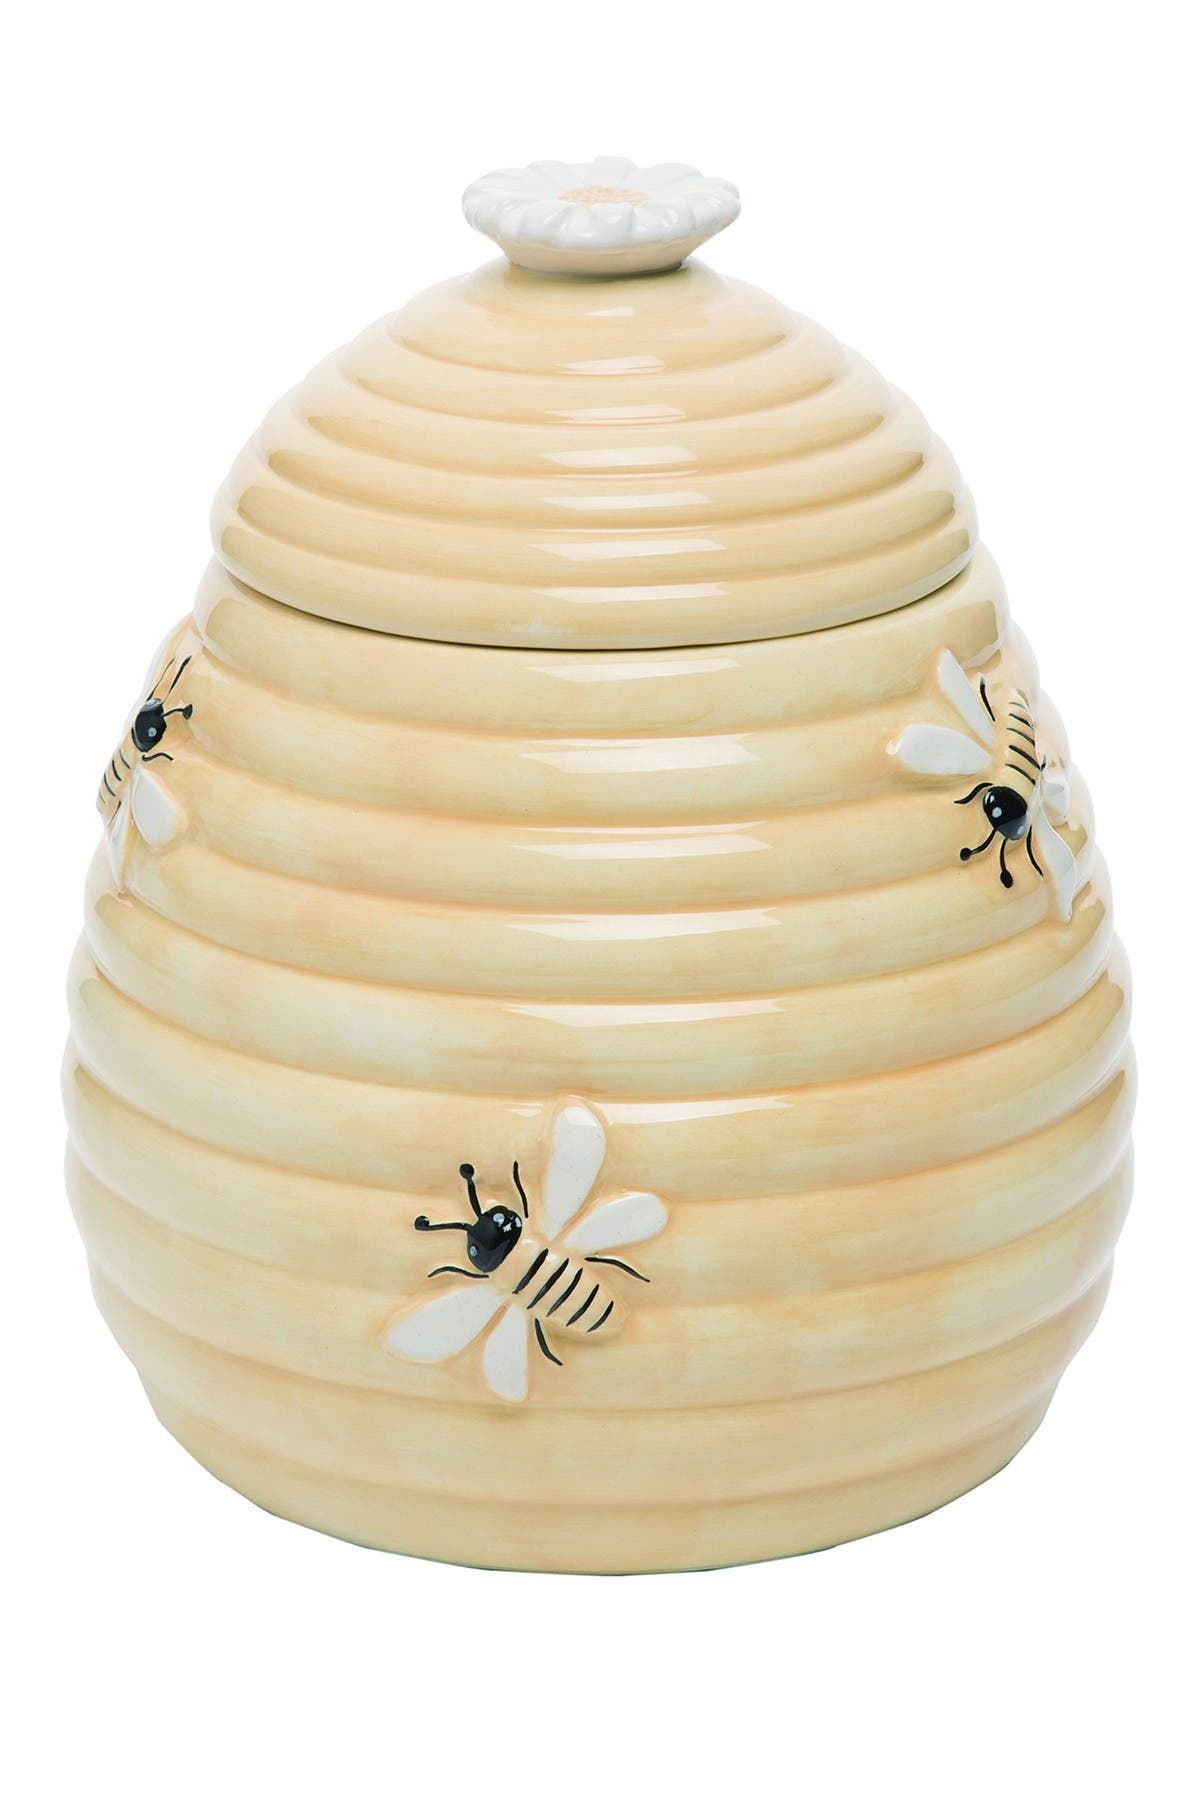 Image of Transpac Beehive Cookie Jar